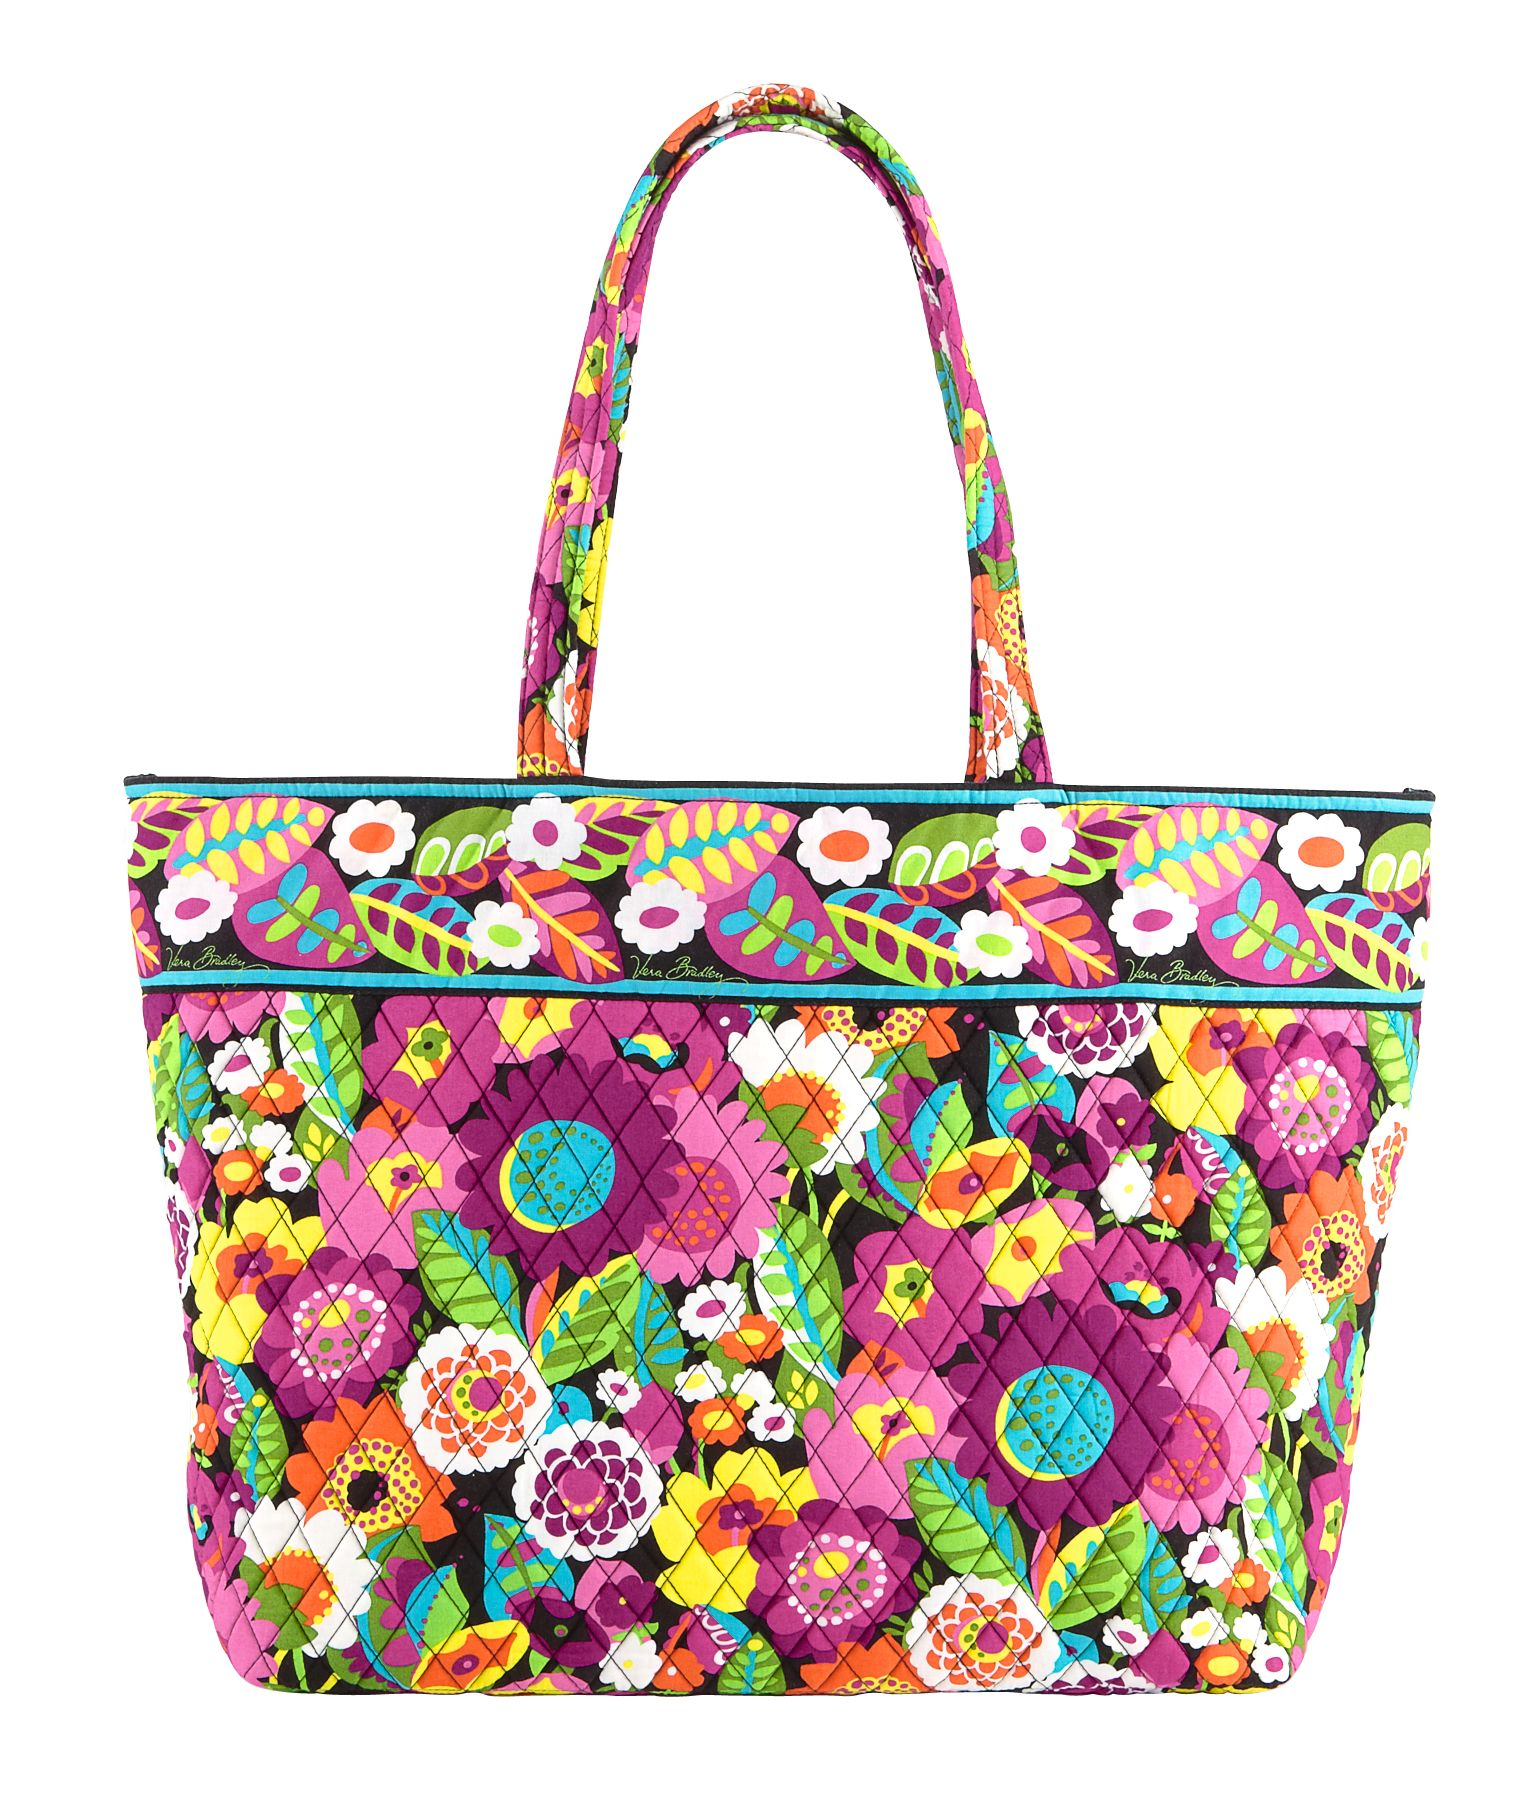 There are plenty of sites to buy and sell Vera Bradley, but one of my favorites is eBay. I am not even sure how many Vera Bradley bags I had at the height of my love for Vera Bradley, but over the years I have used eBay to sell off bags that I was done using so that I could make room for new bags.